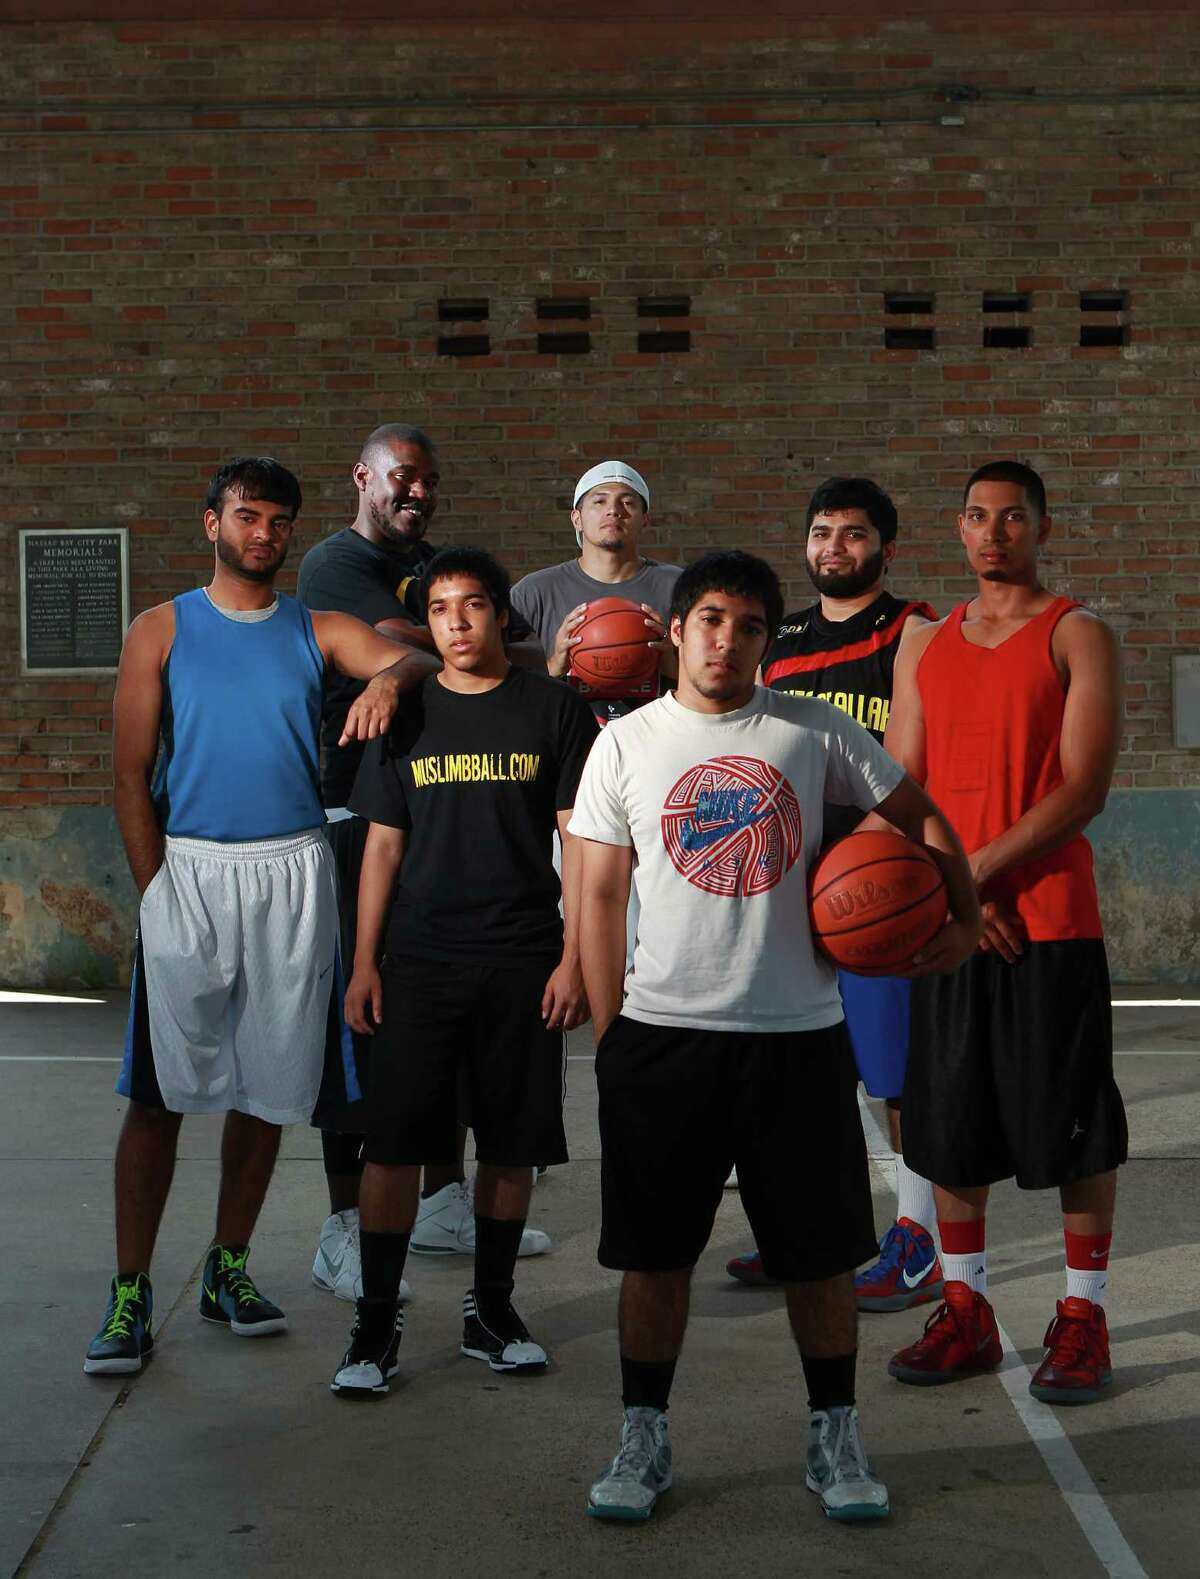 From left, Muslim basketball players Raheel Azeez, Khary Dixon, Aqib Gazi, Jorge Palomares, Saqib Gazi, Aamir Kidwai, and Kazeem Mohamed at Lake Nassau Park Sunday, May 27, 2012, in Nassau Bay. ( Johnny Hanson / Houston Chronicle ) The group is one of the teams represented from the Clear Lake Islamic Center that will play in the First Annual iSlam Basketball Tournament at the University of Houston June 9 and 10.